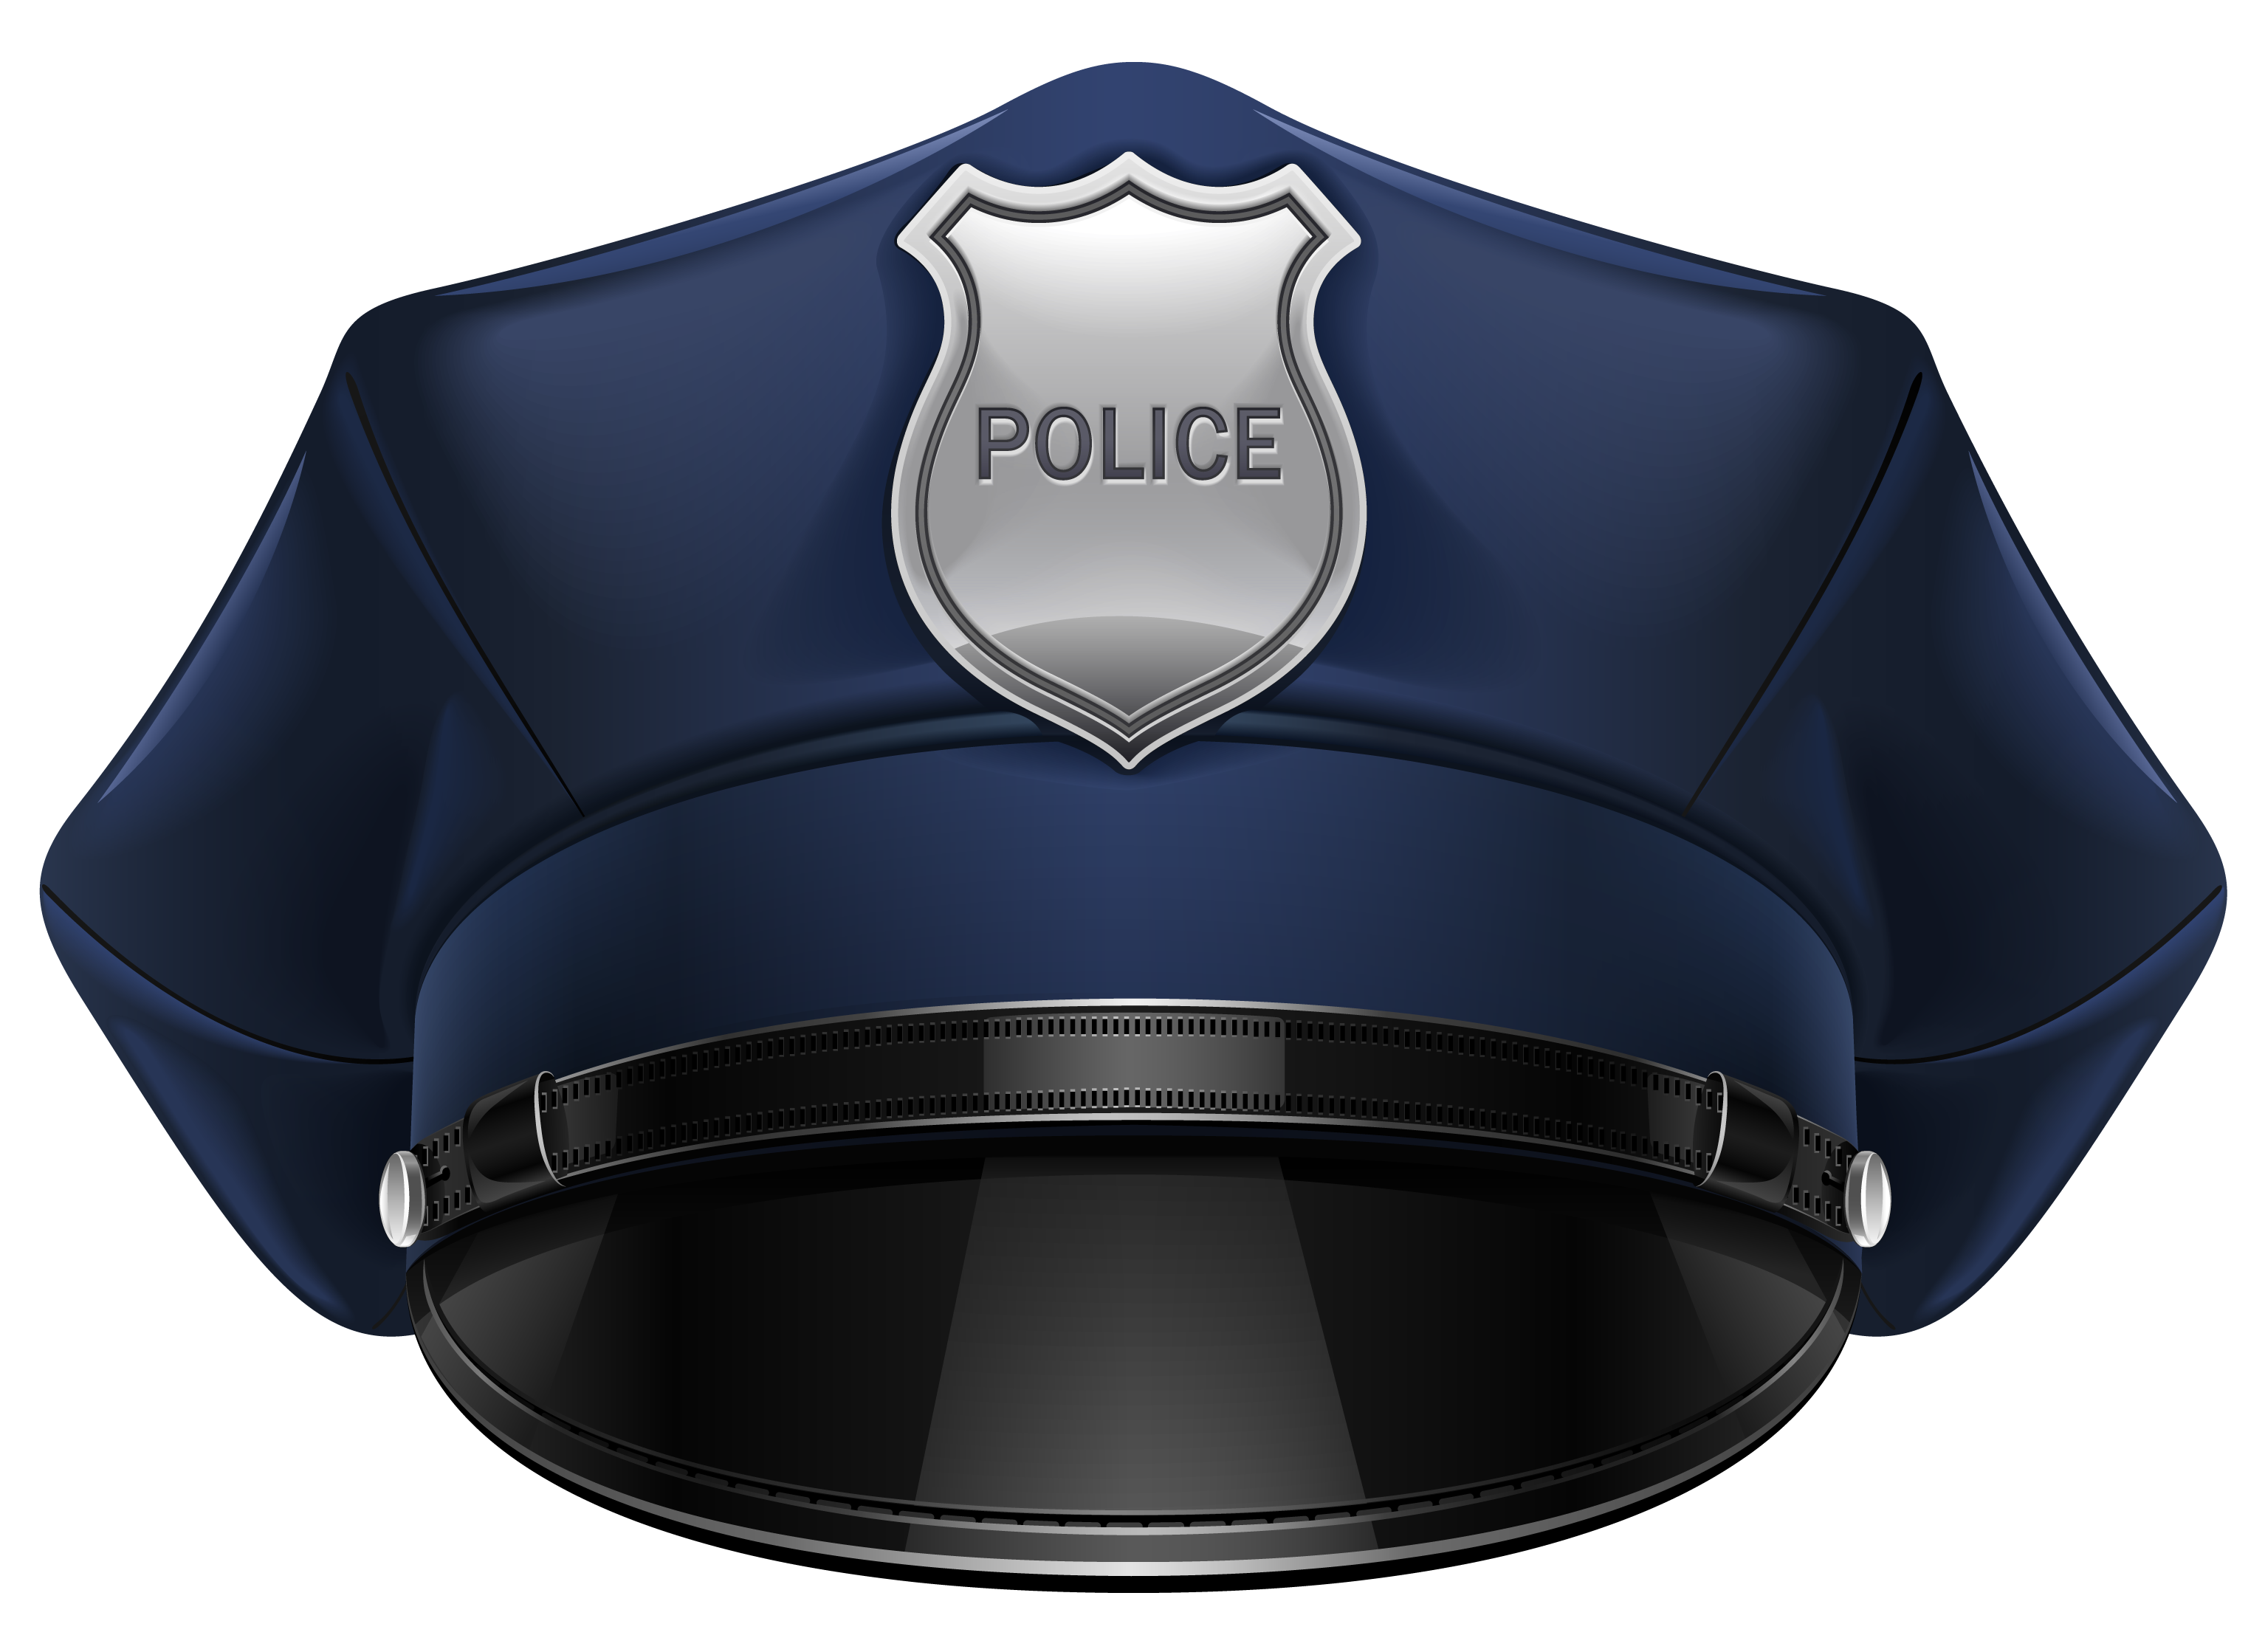 Hats drawing police officer. Cop hat at getdrawings